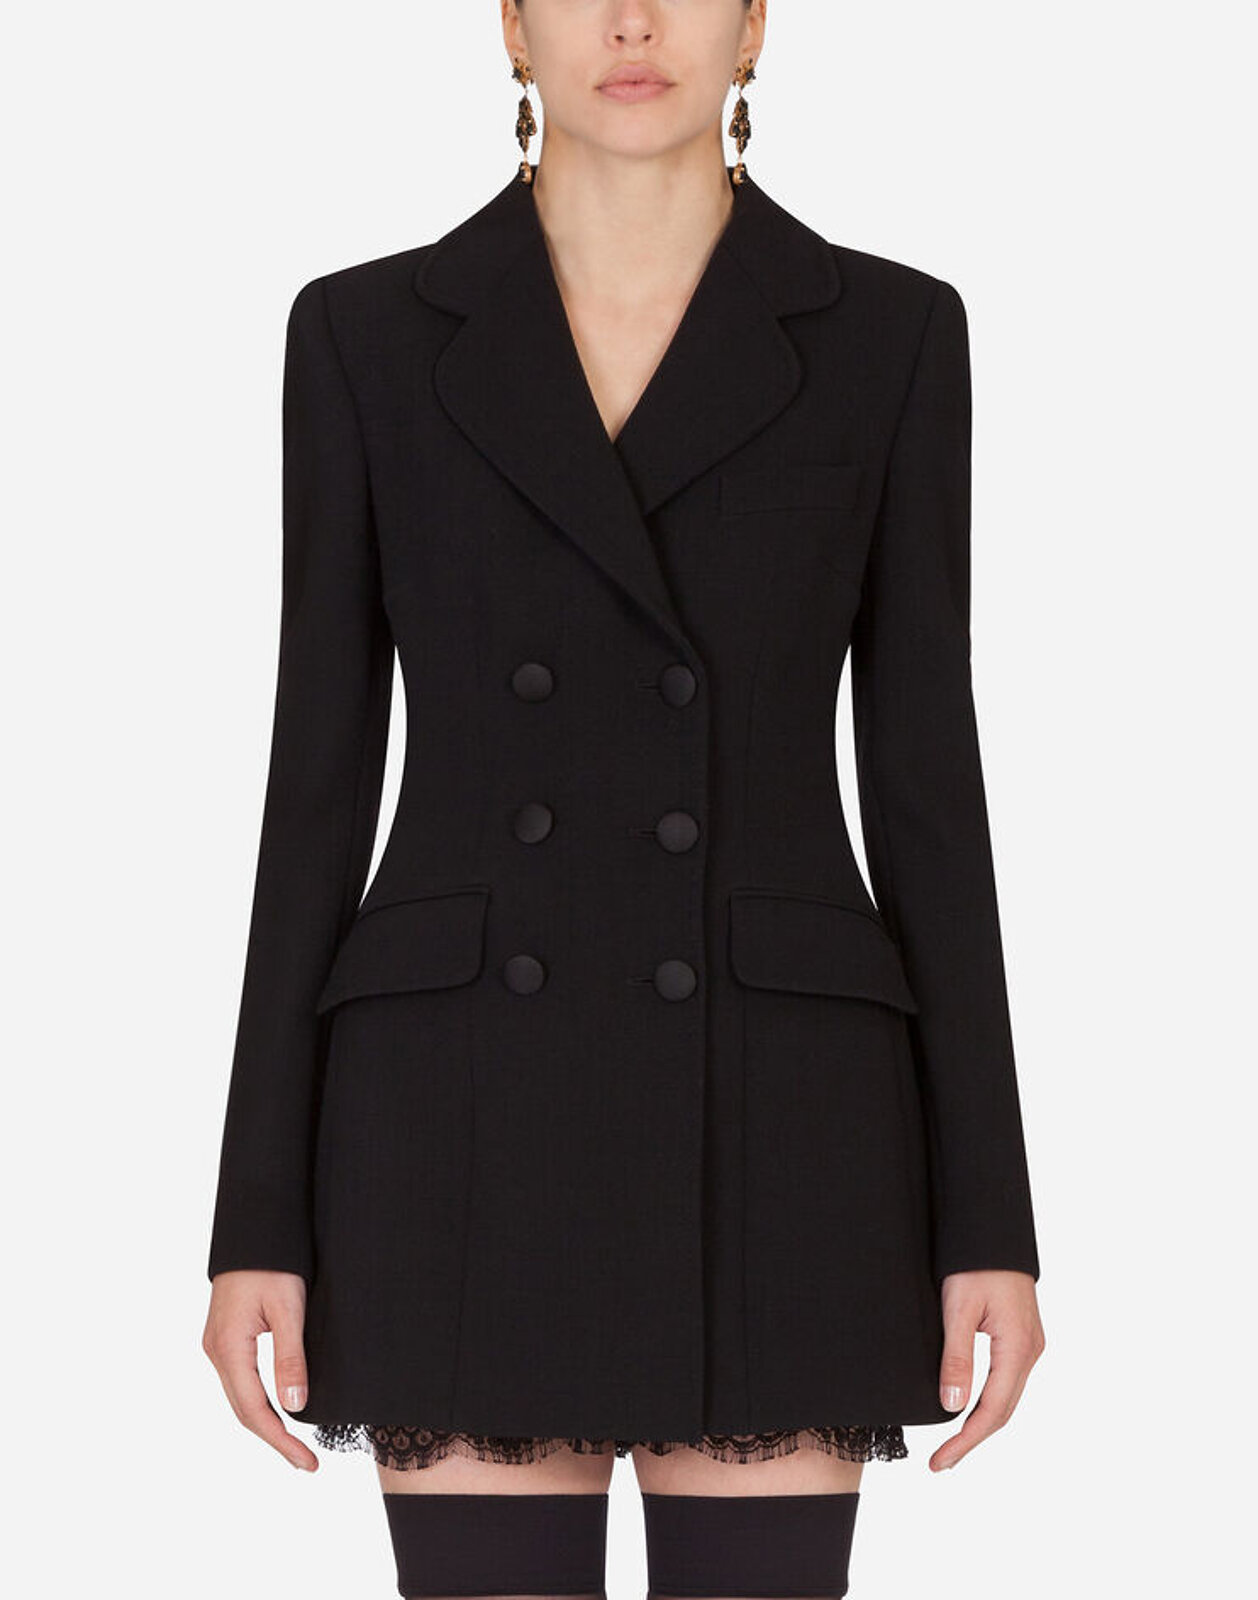 Long Double-Breasted Jacket - Dolce & Gabbana